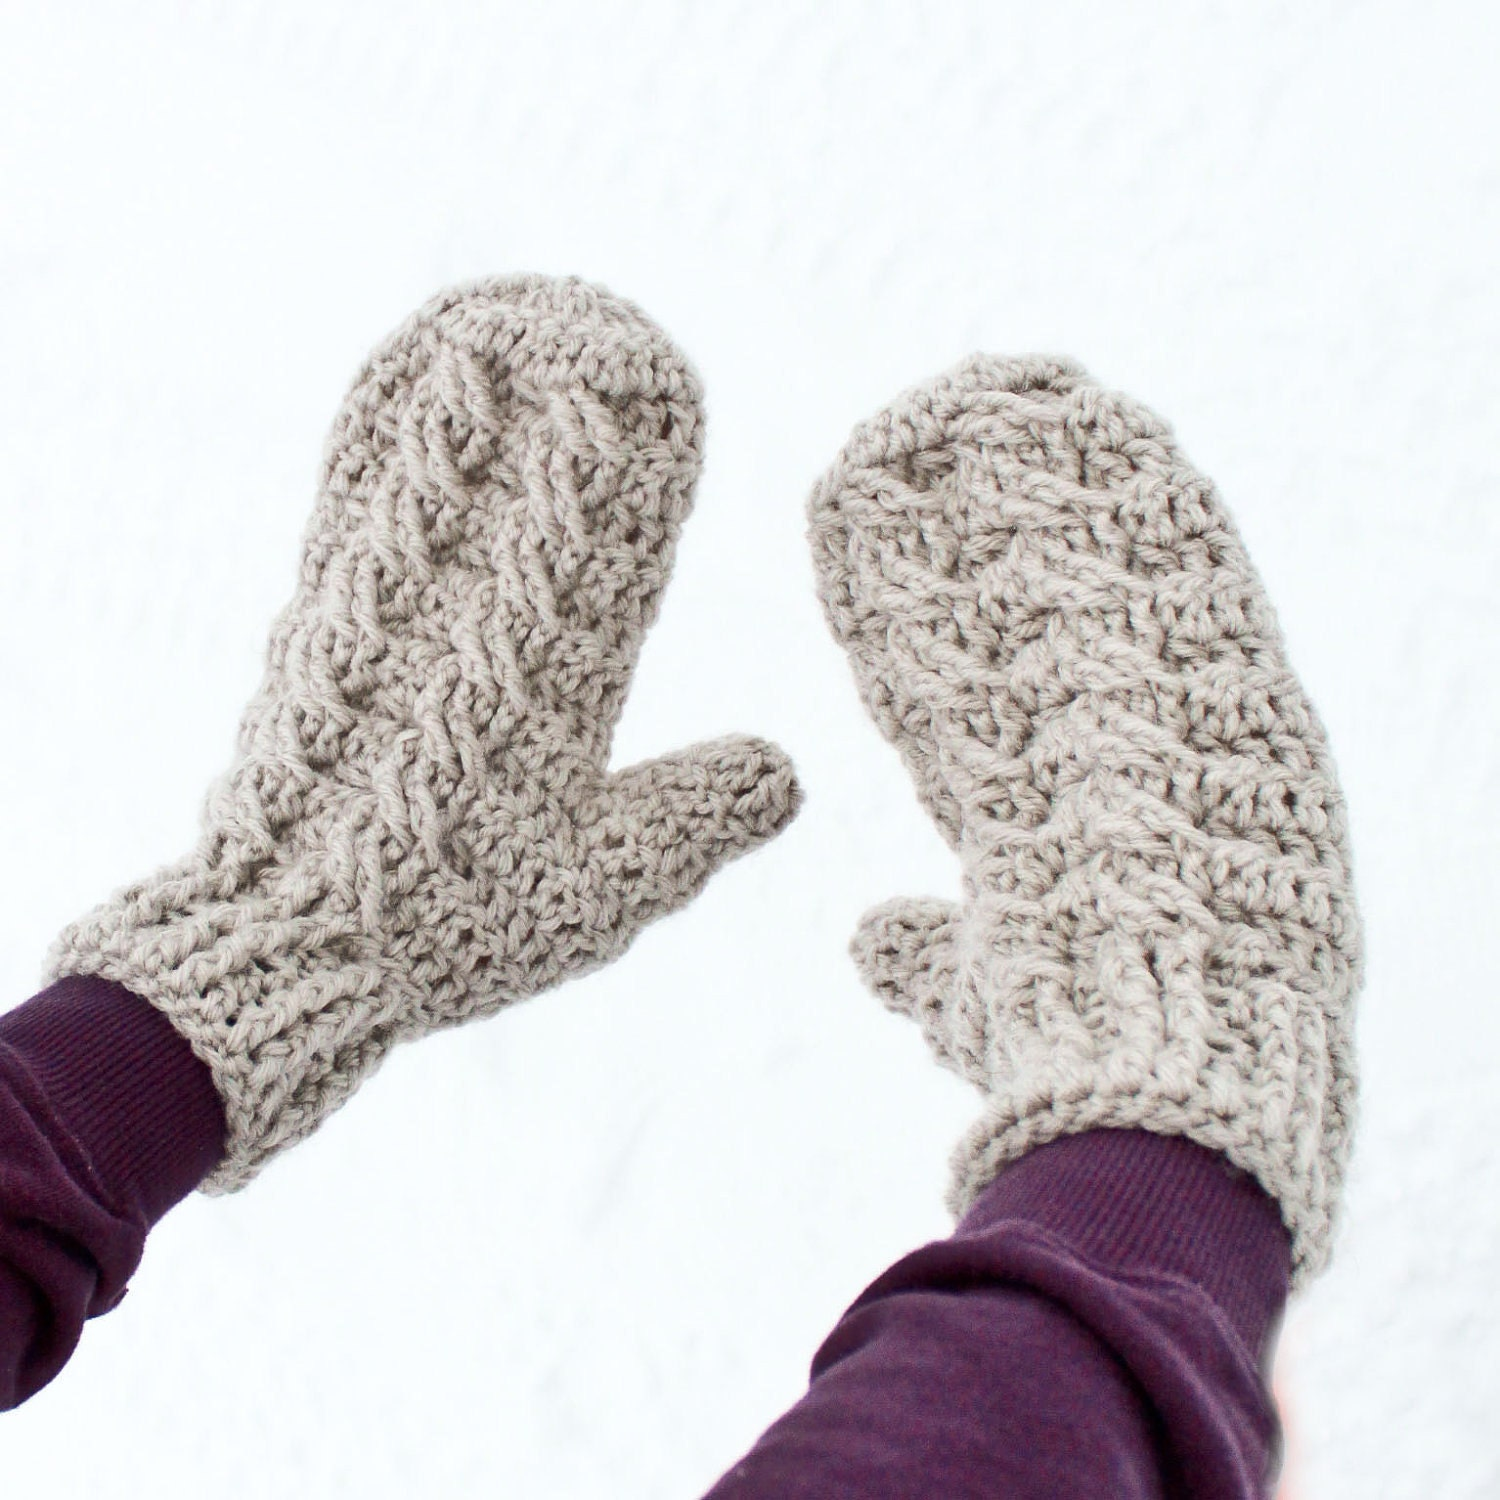 Free Crochet Pattern For Chunky Mittens : Instant Download Crochet Pattern Cable Mittens and Cowl